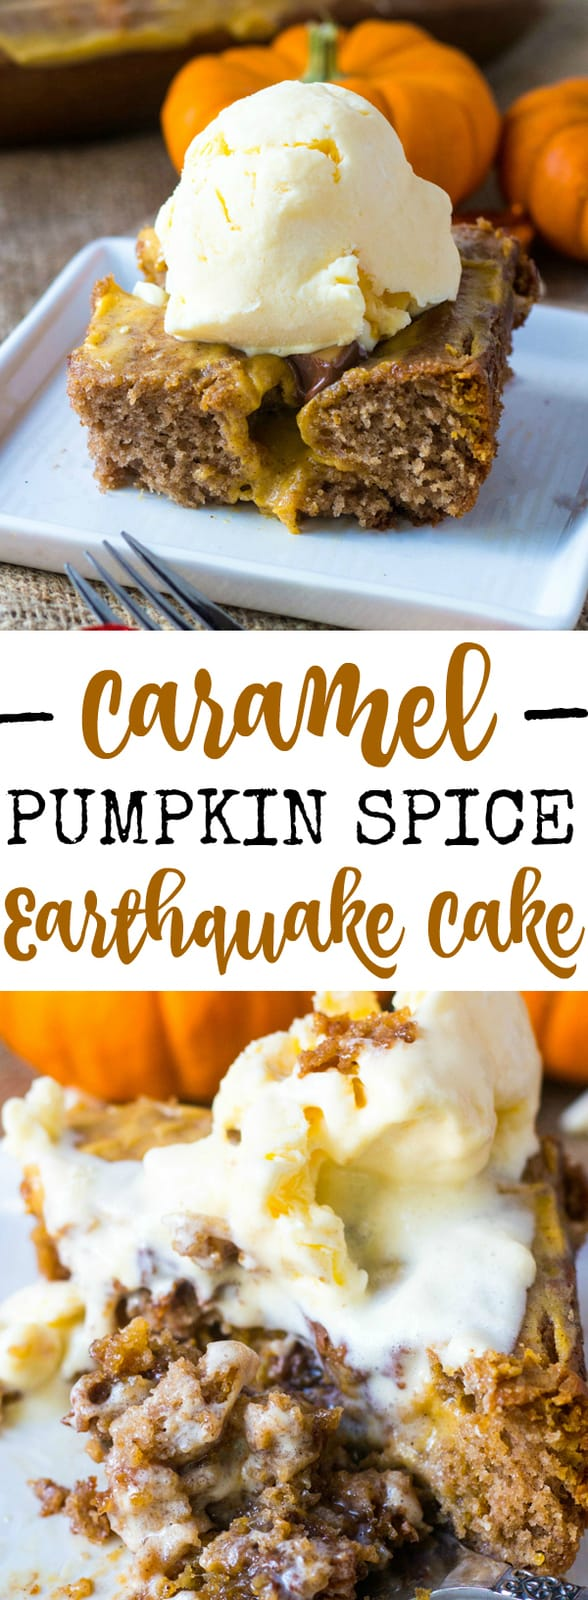 Caramel Pumpkin Spice Earthquake Quake